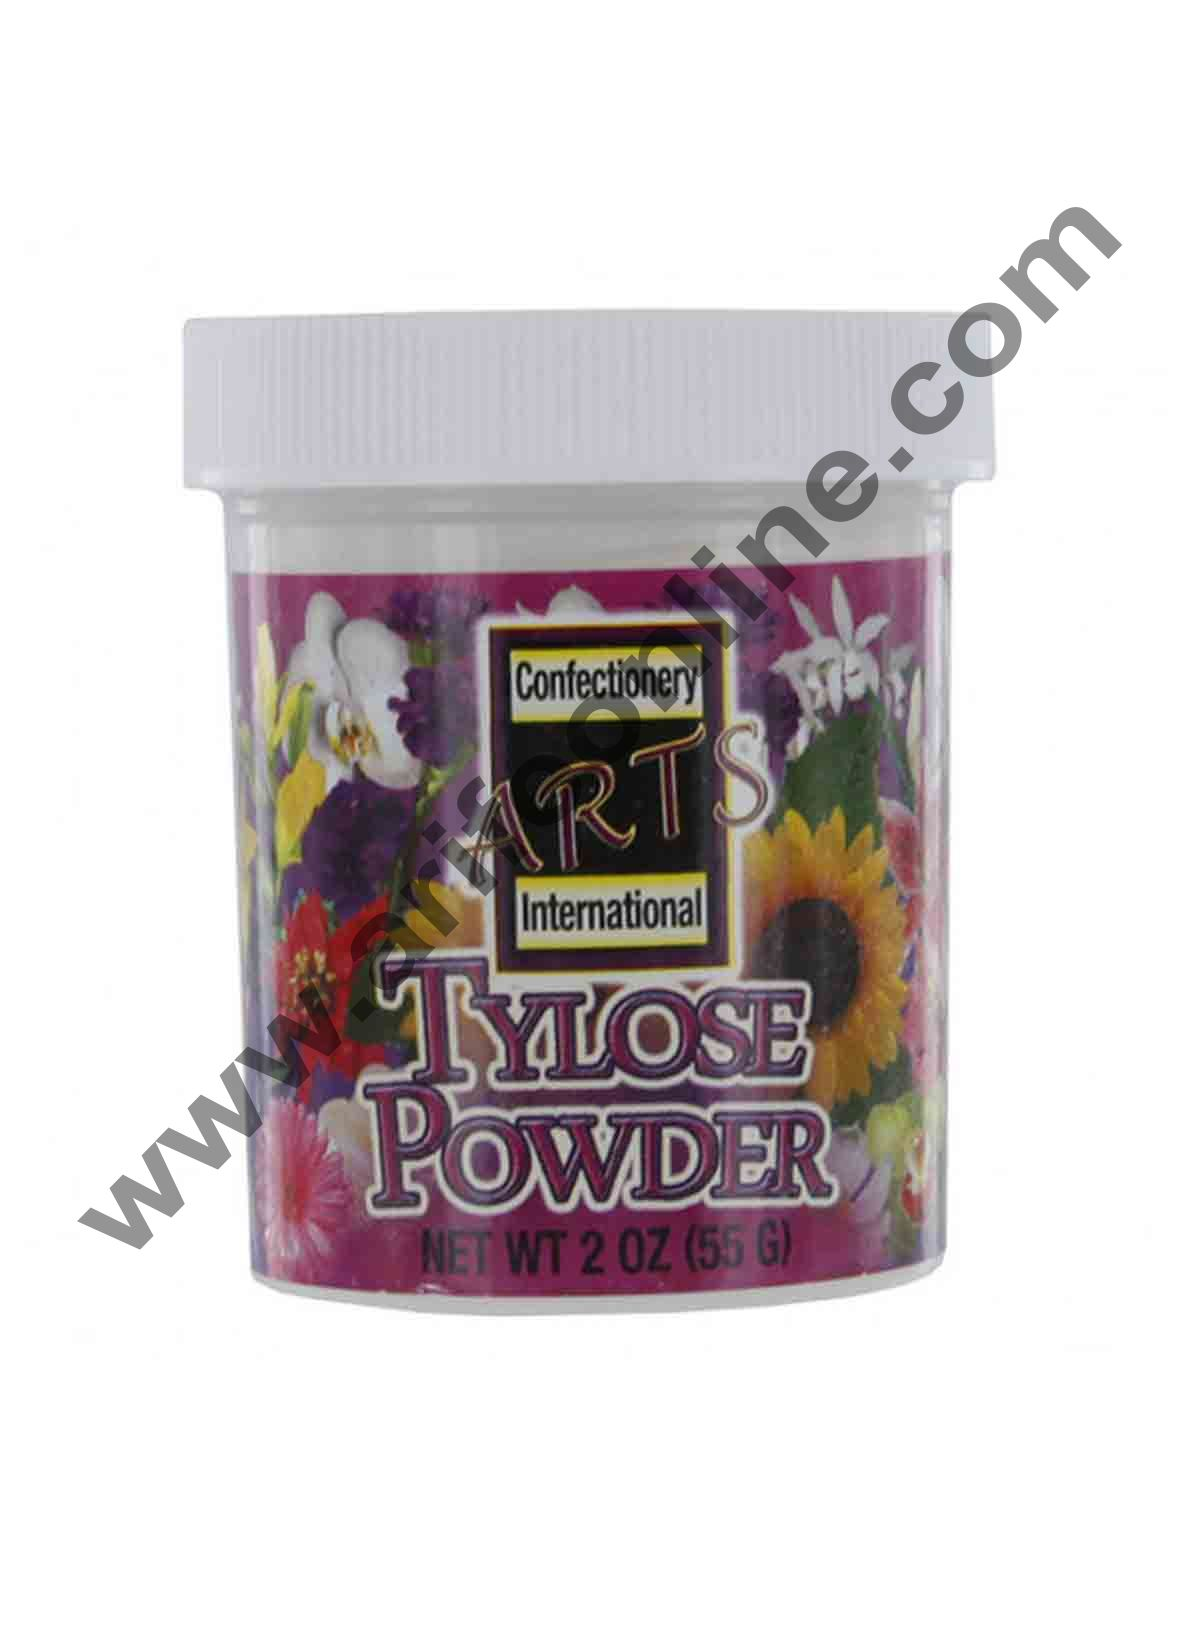 Confectionery Arts International Tylose Powder - 2 OZ (55 gm)